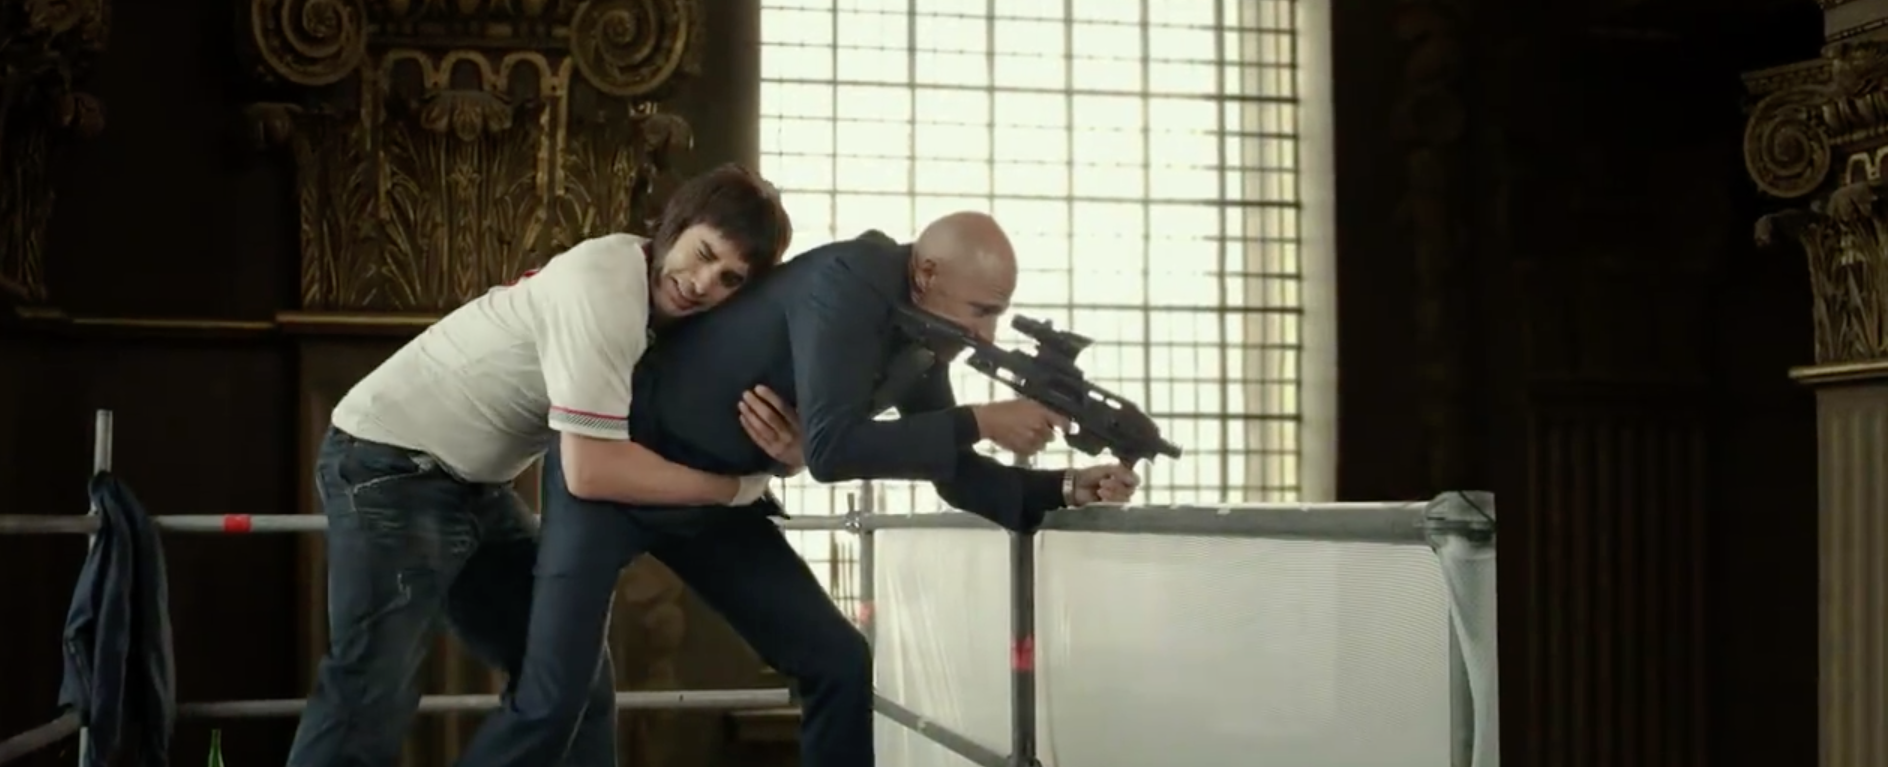 The Brothers Grimsby - H 2015